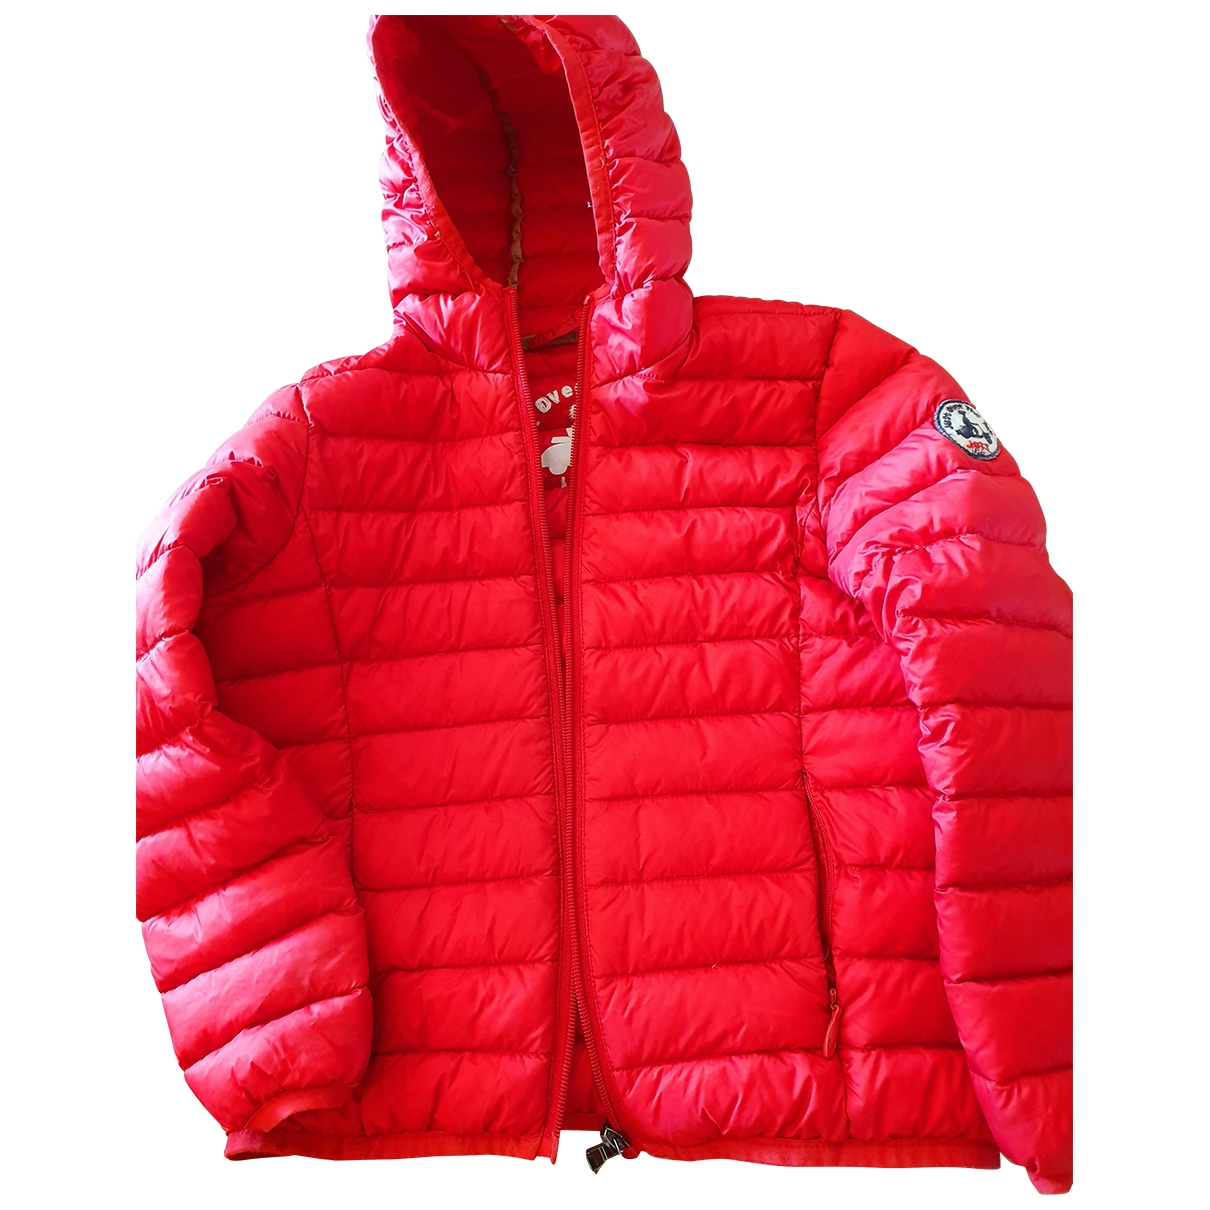 Jott \N Red jacket & coat for Kids 4 years - up to 102cm FR